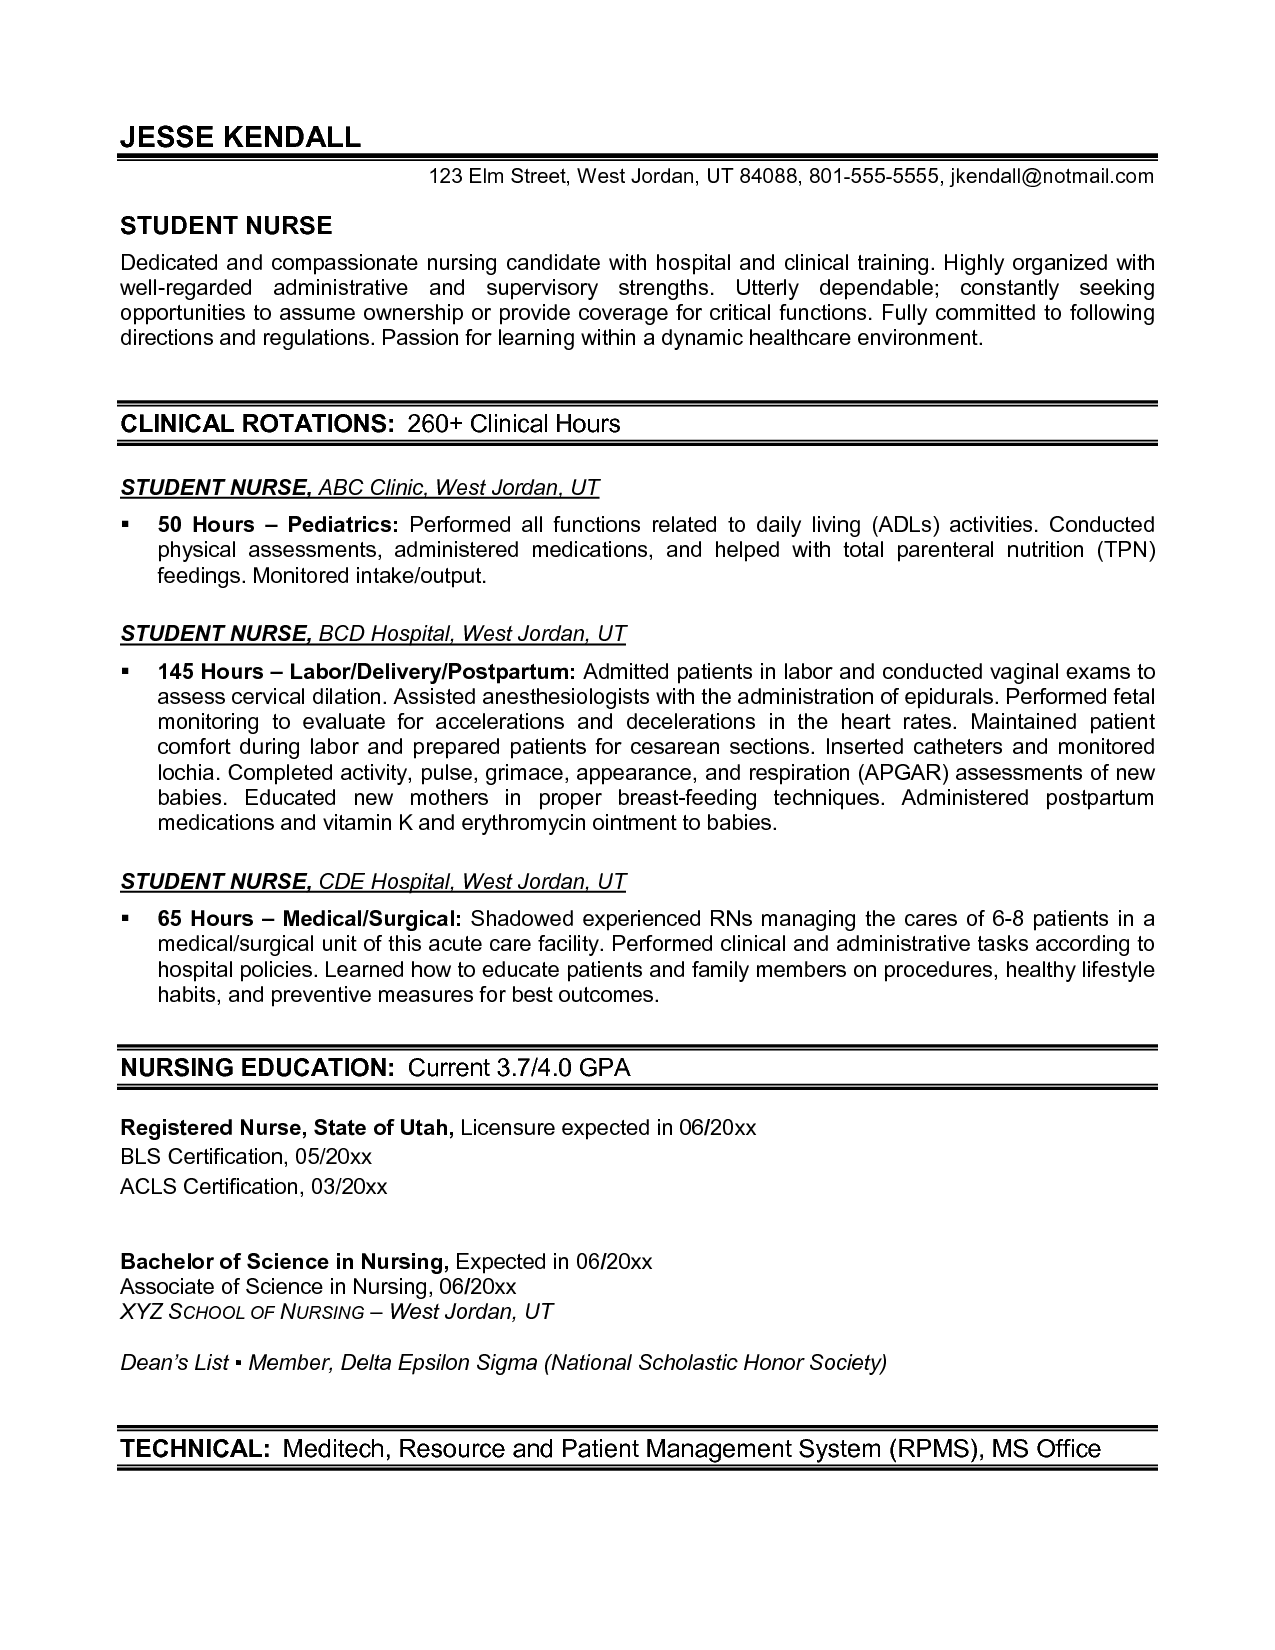 Resume Template Nursing Student nurse resume, New grad